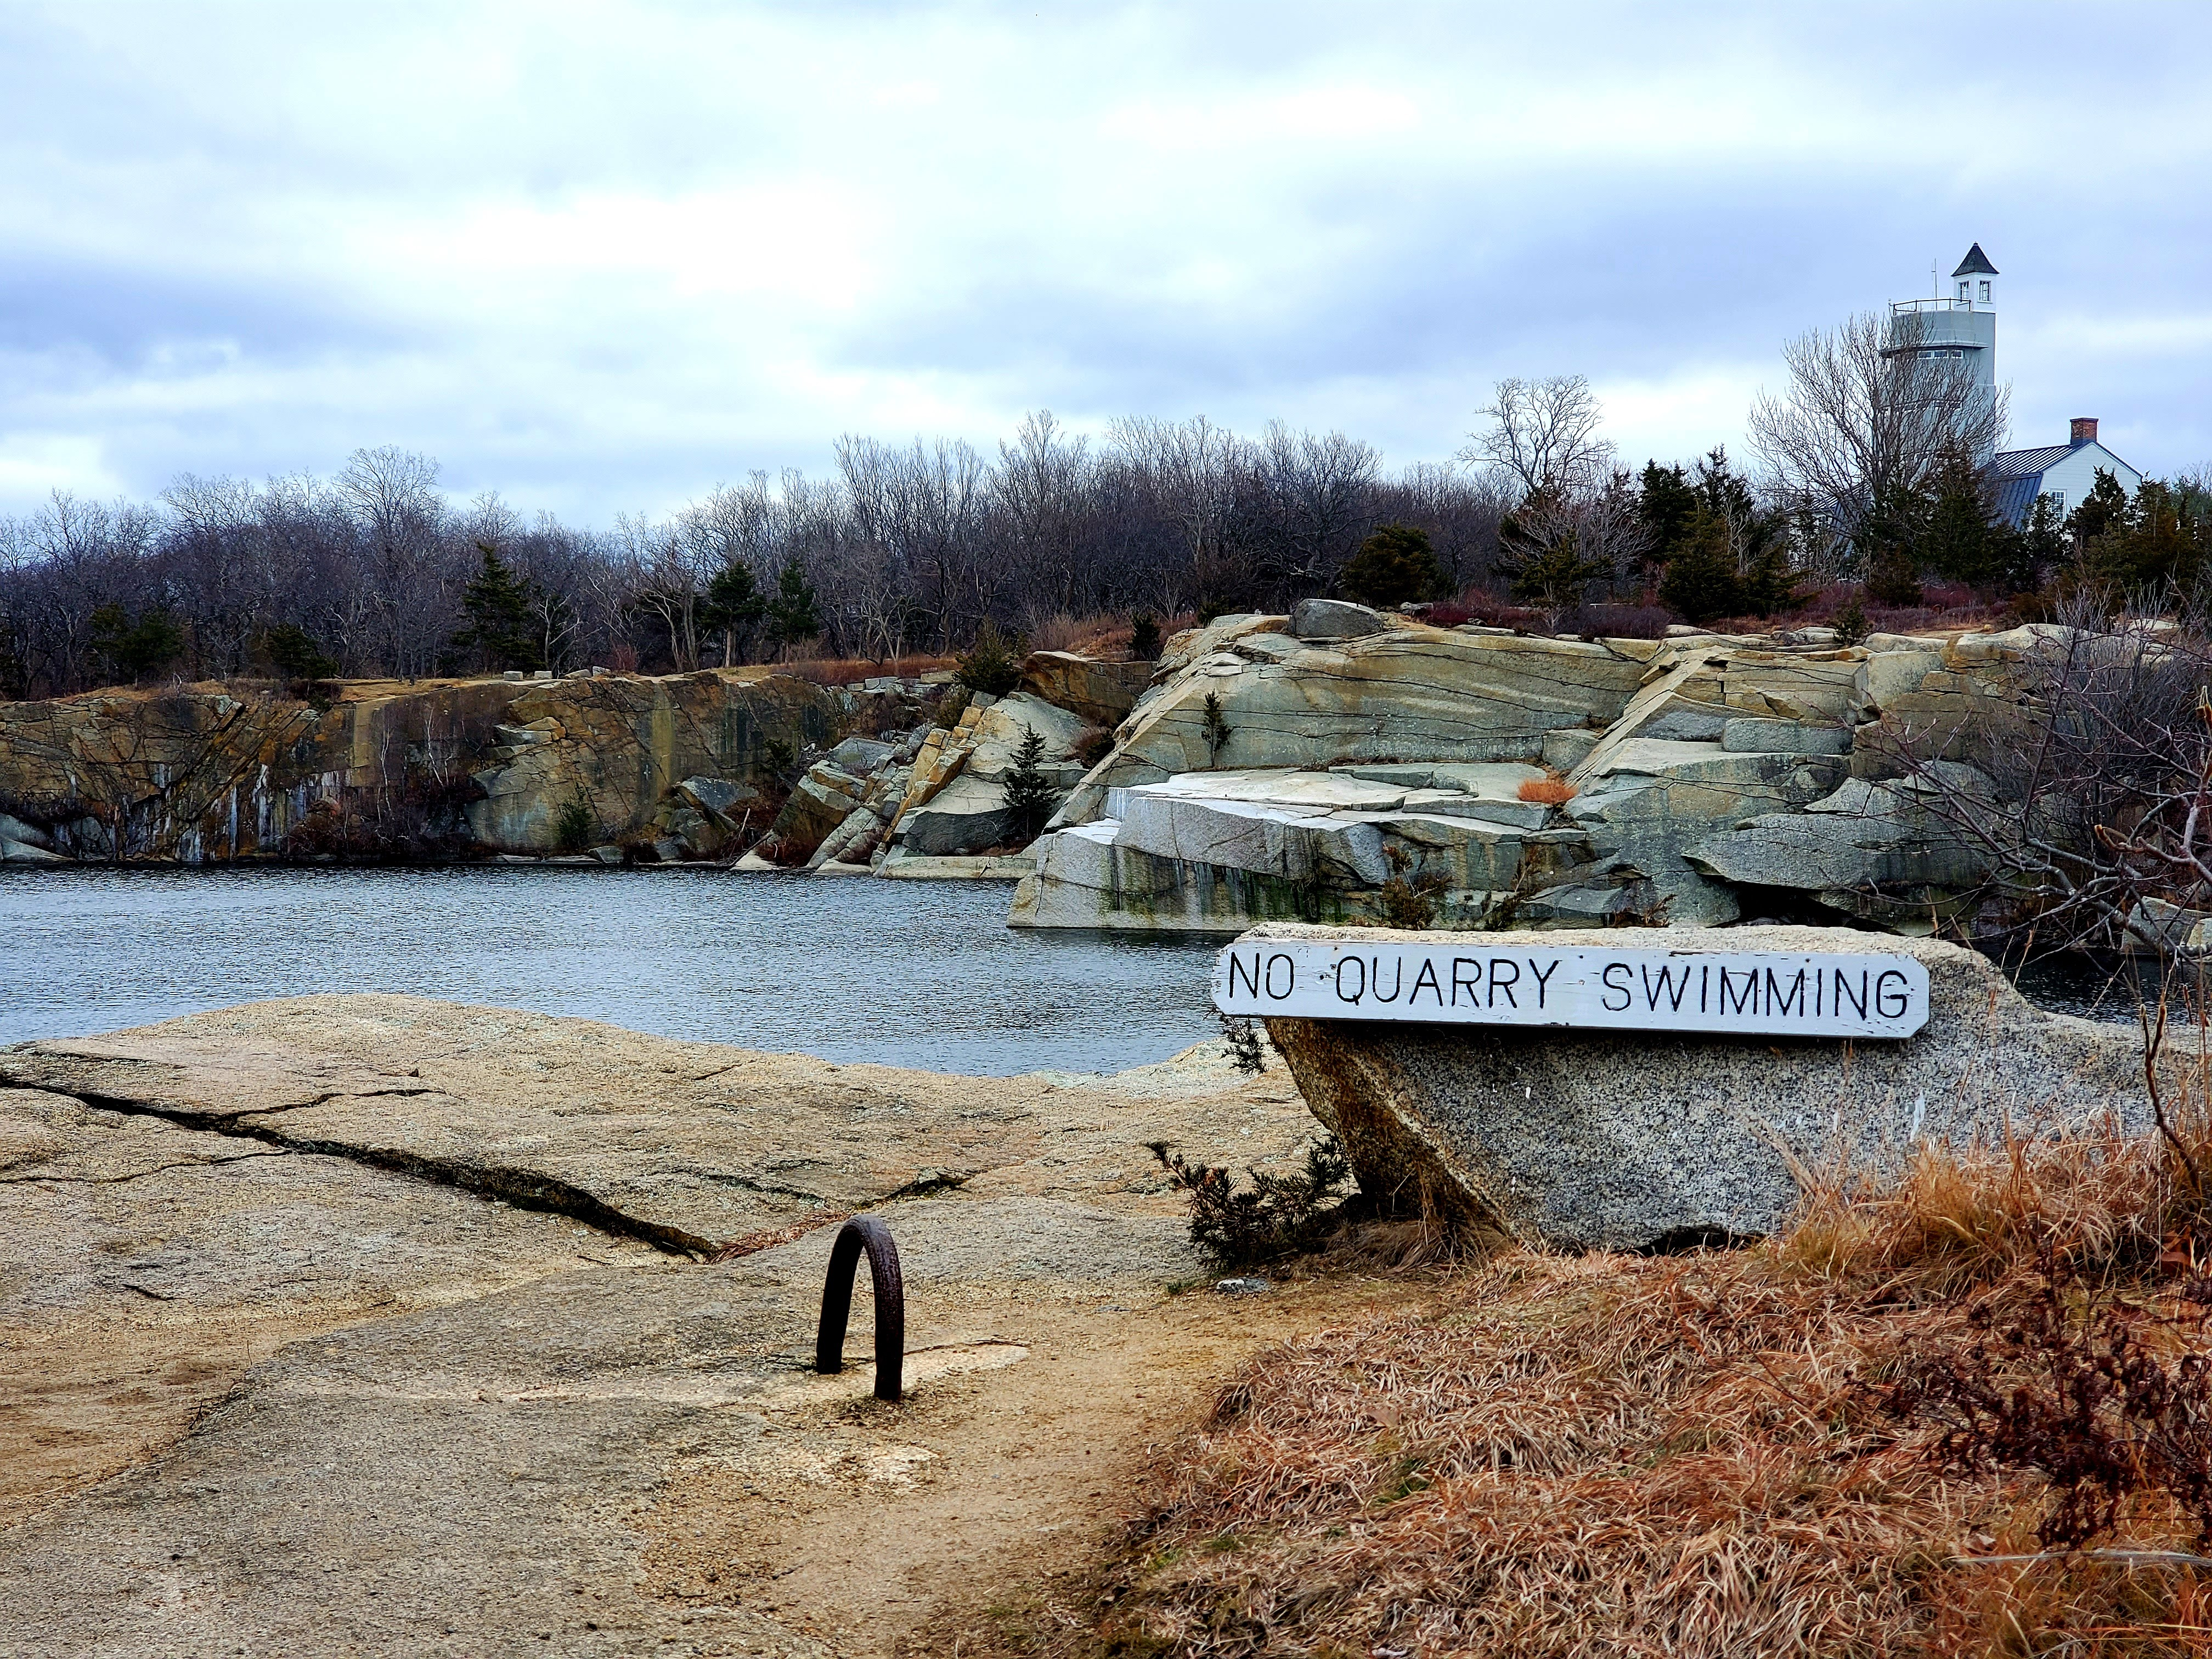 No Quarry Swimming sign